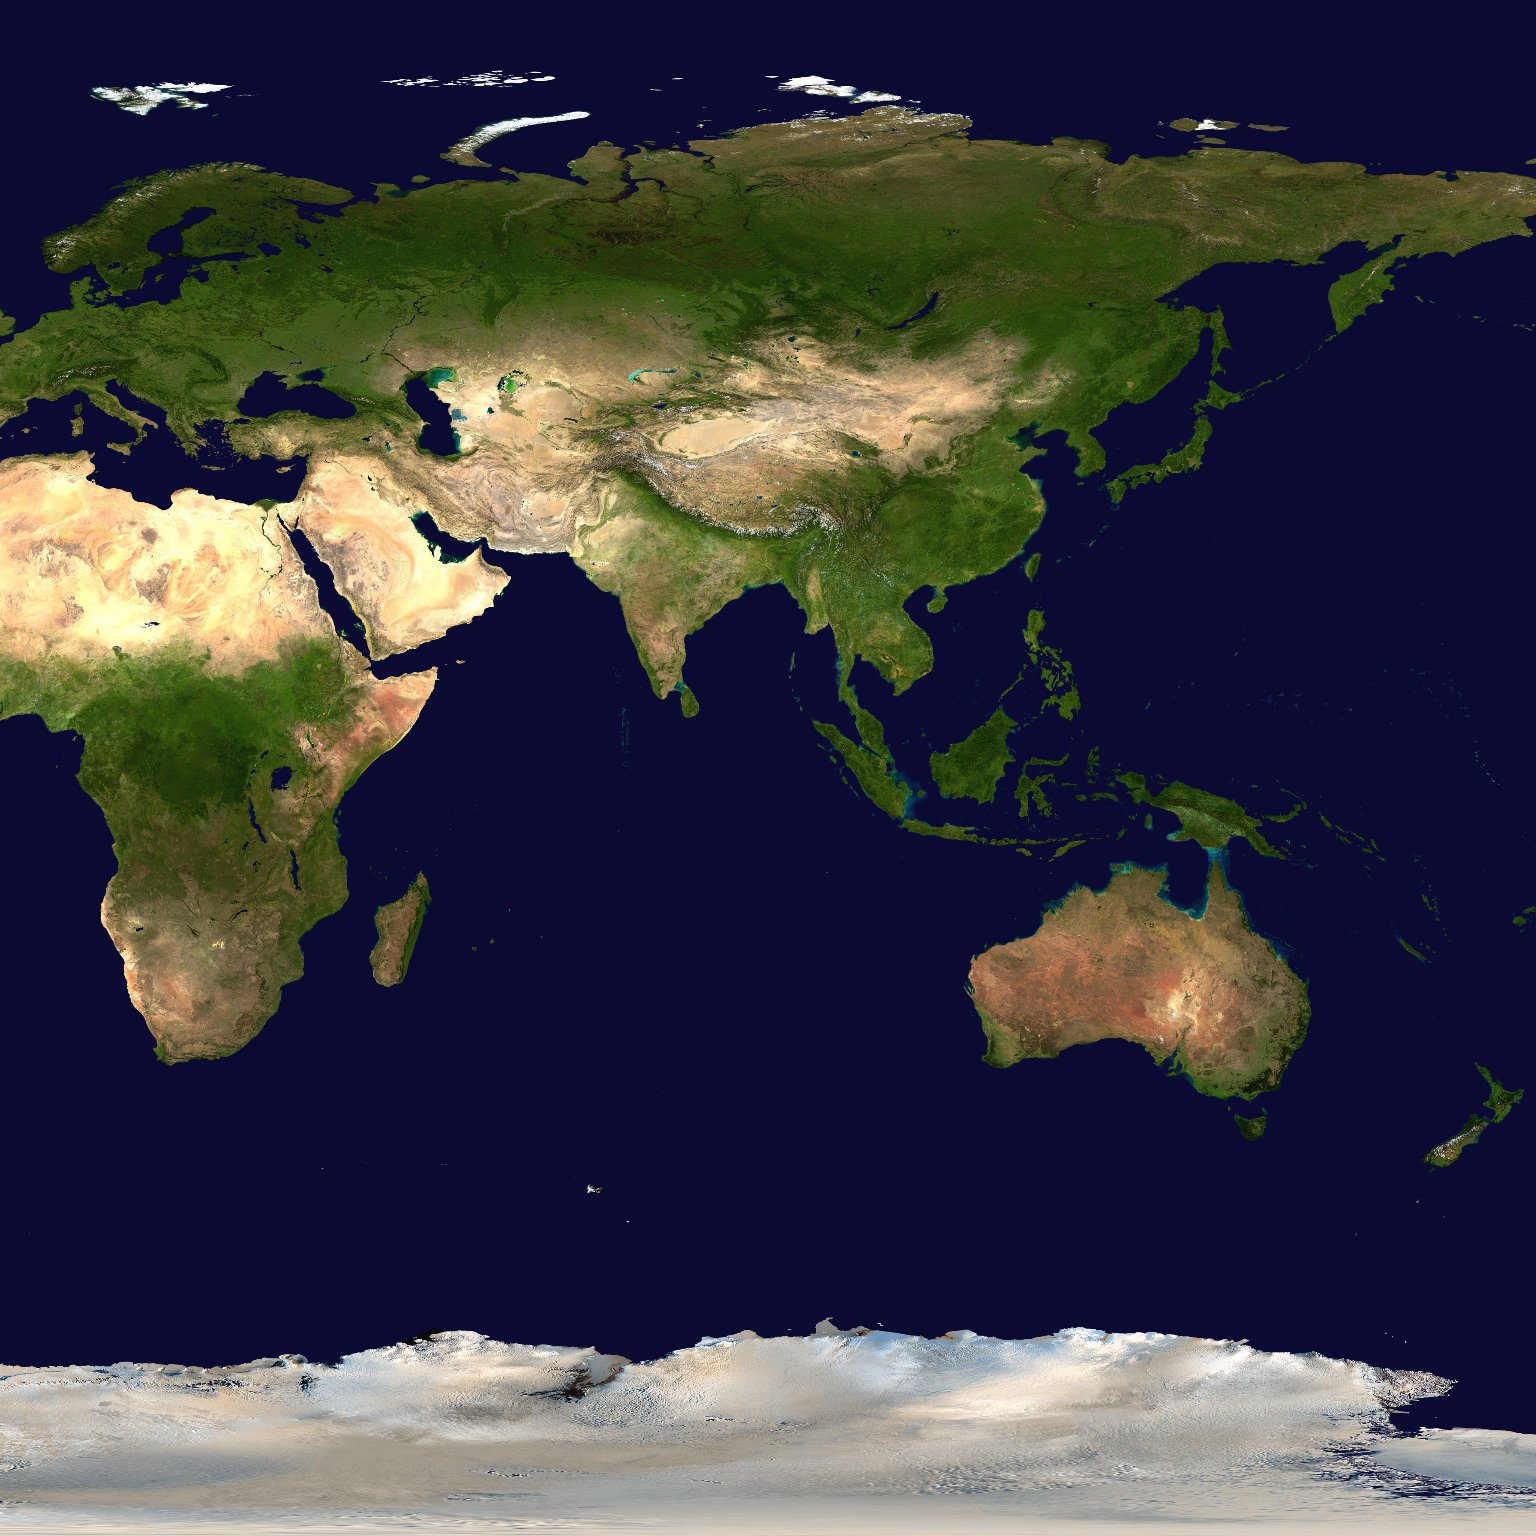 Blue Marble - A Seamless Image Mosaic of the Earth (WMS)